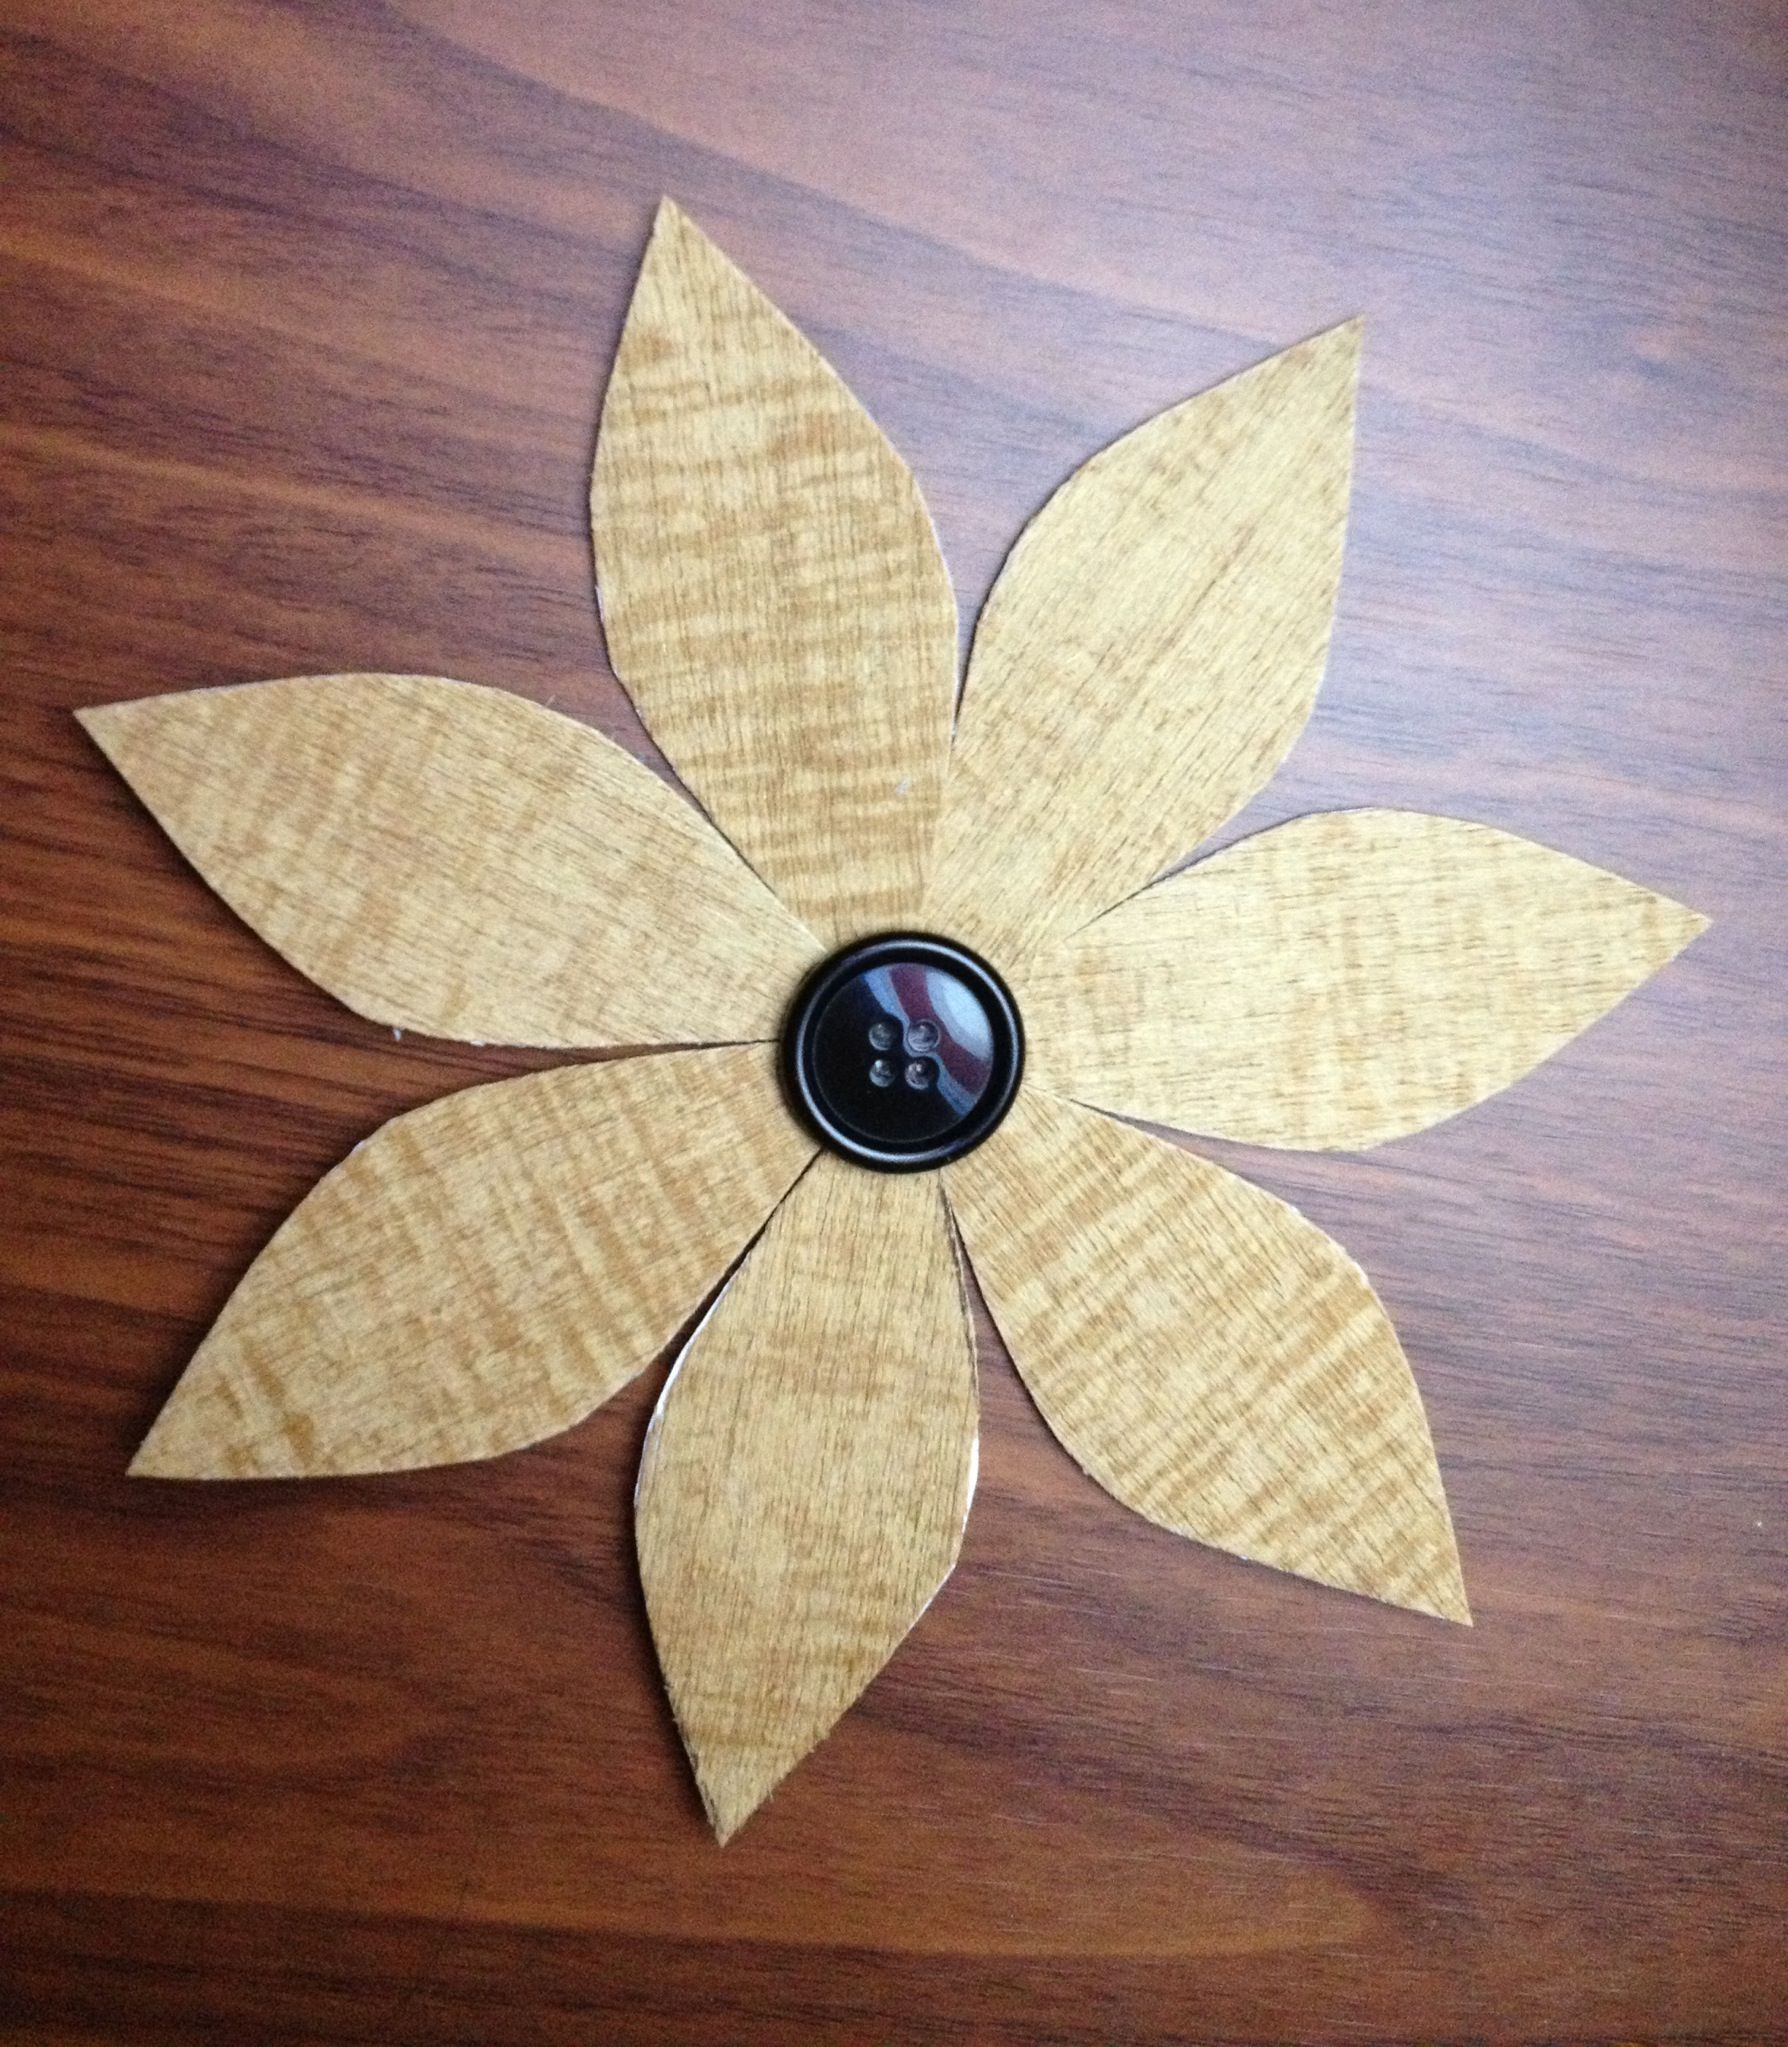 Made by me (Angie Walker D.) a homemade decoration made with some peels of a old door and some other materials.